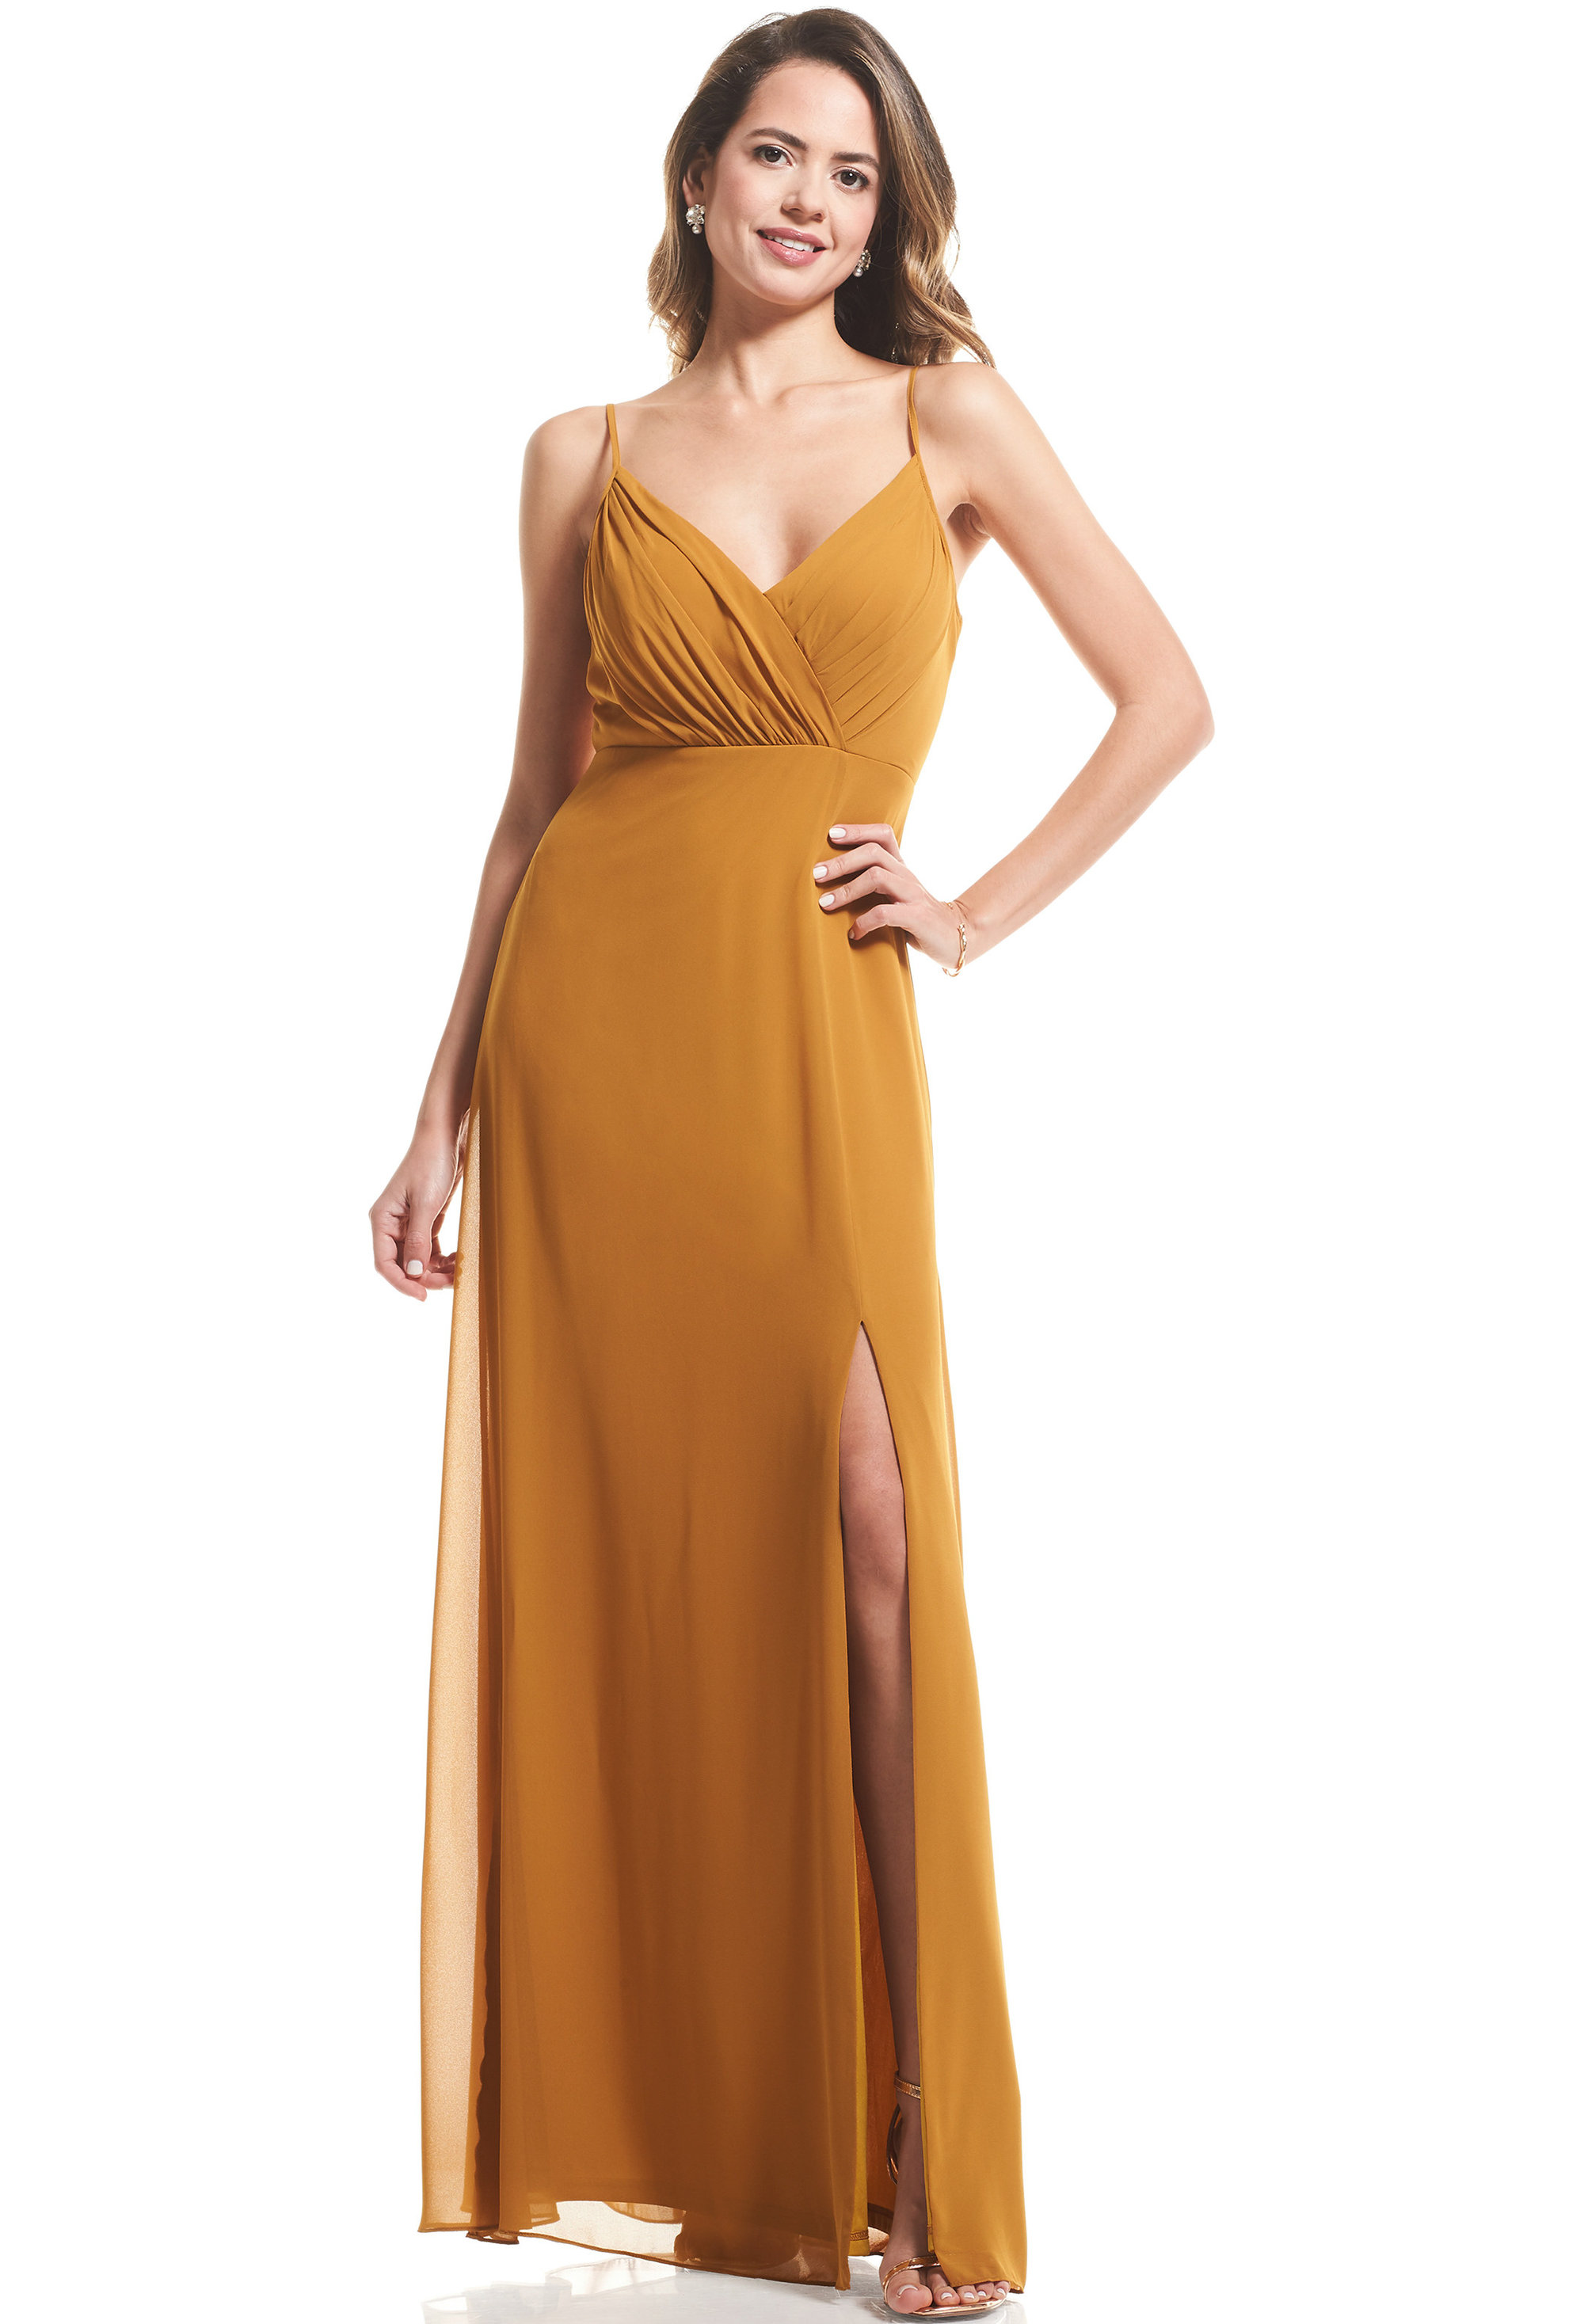 Bill Levkoff GOLD Chiffon Surplice A-Line gown, $89.00 Front